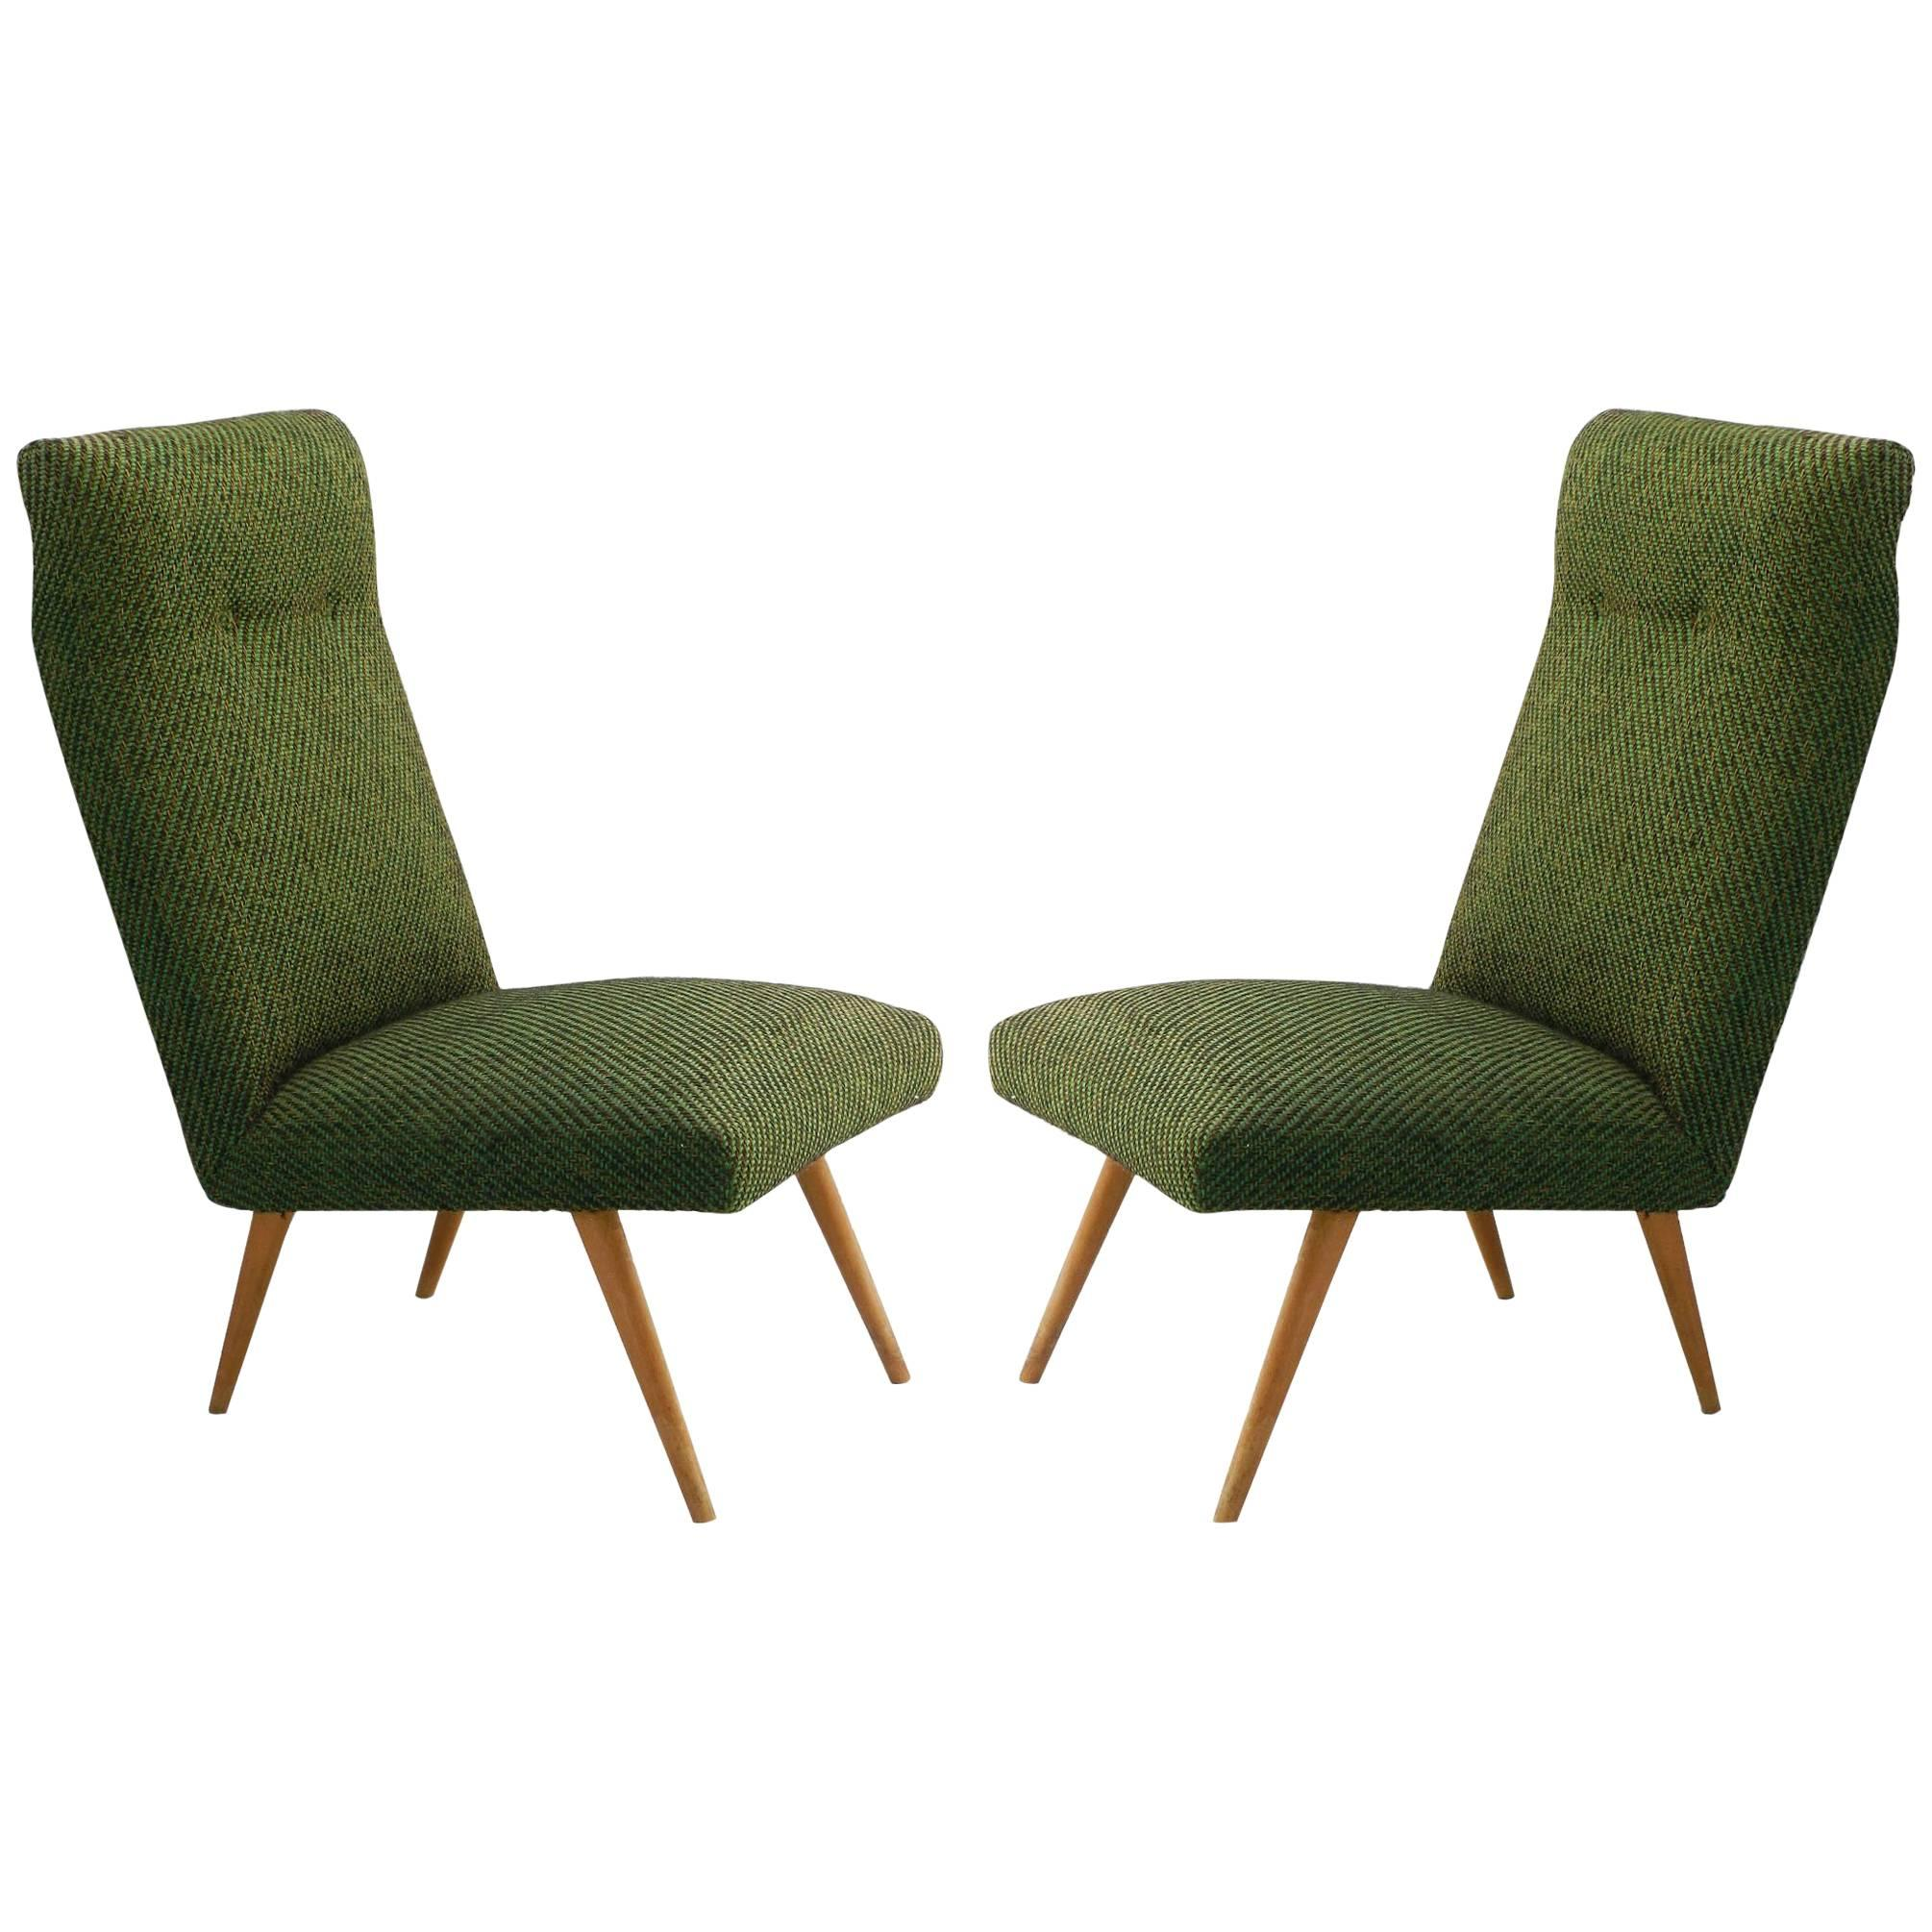 Pair of Midcentury Chairs Guariche Style French Upholstered, 1950s